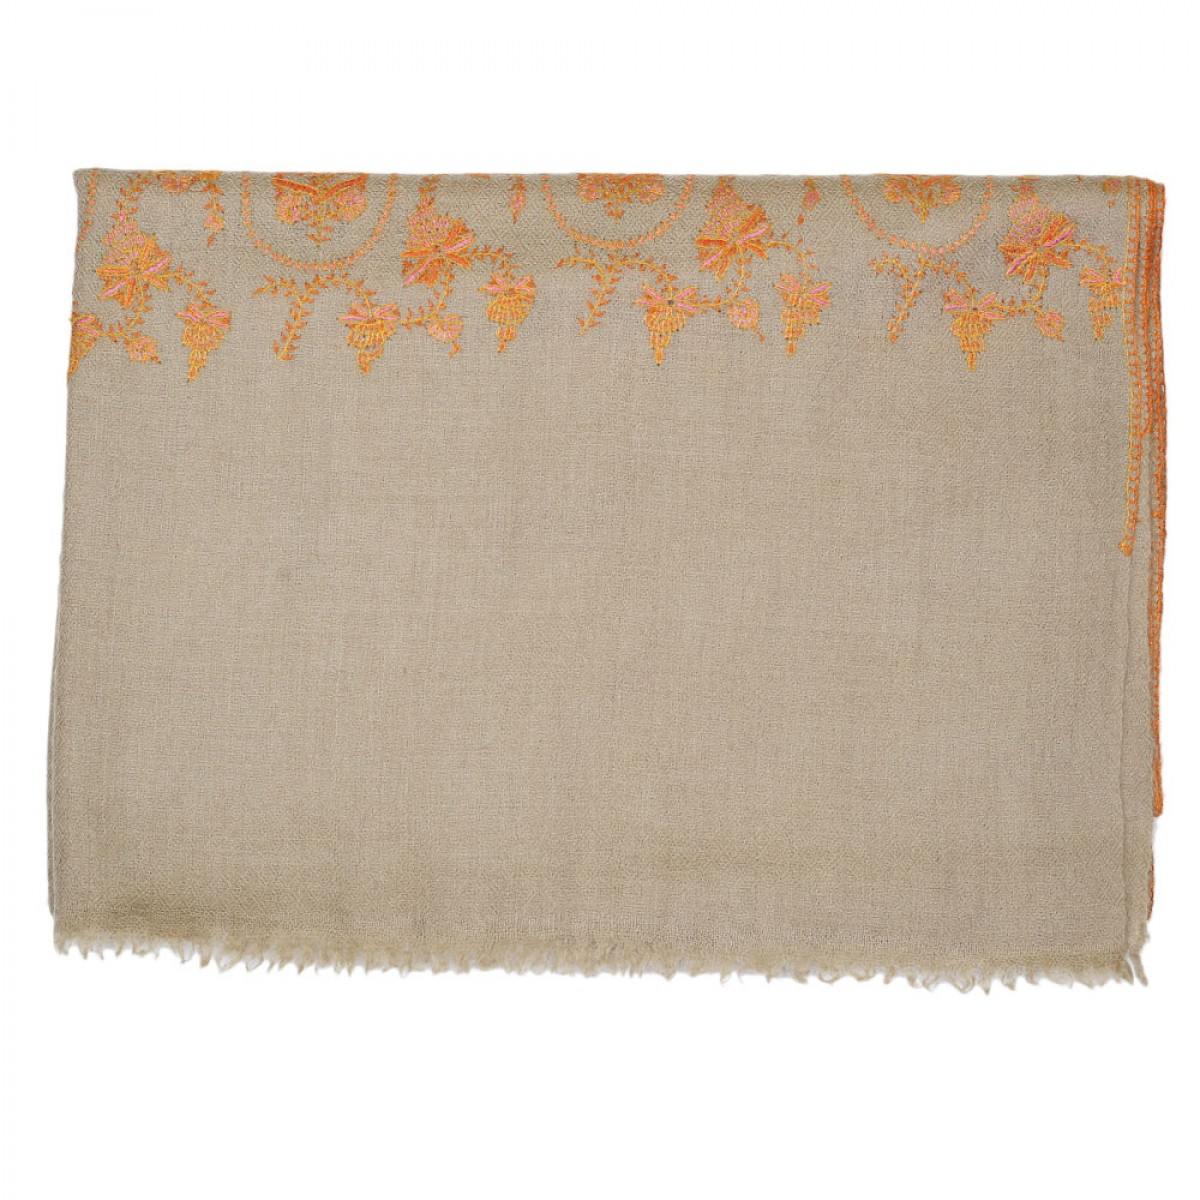 Embroidered Handloom Pashmina Stole - Natural Orange